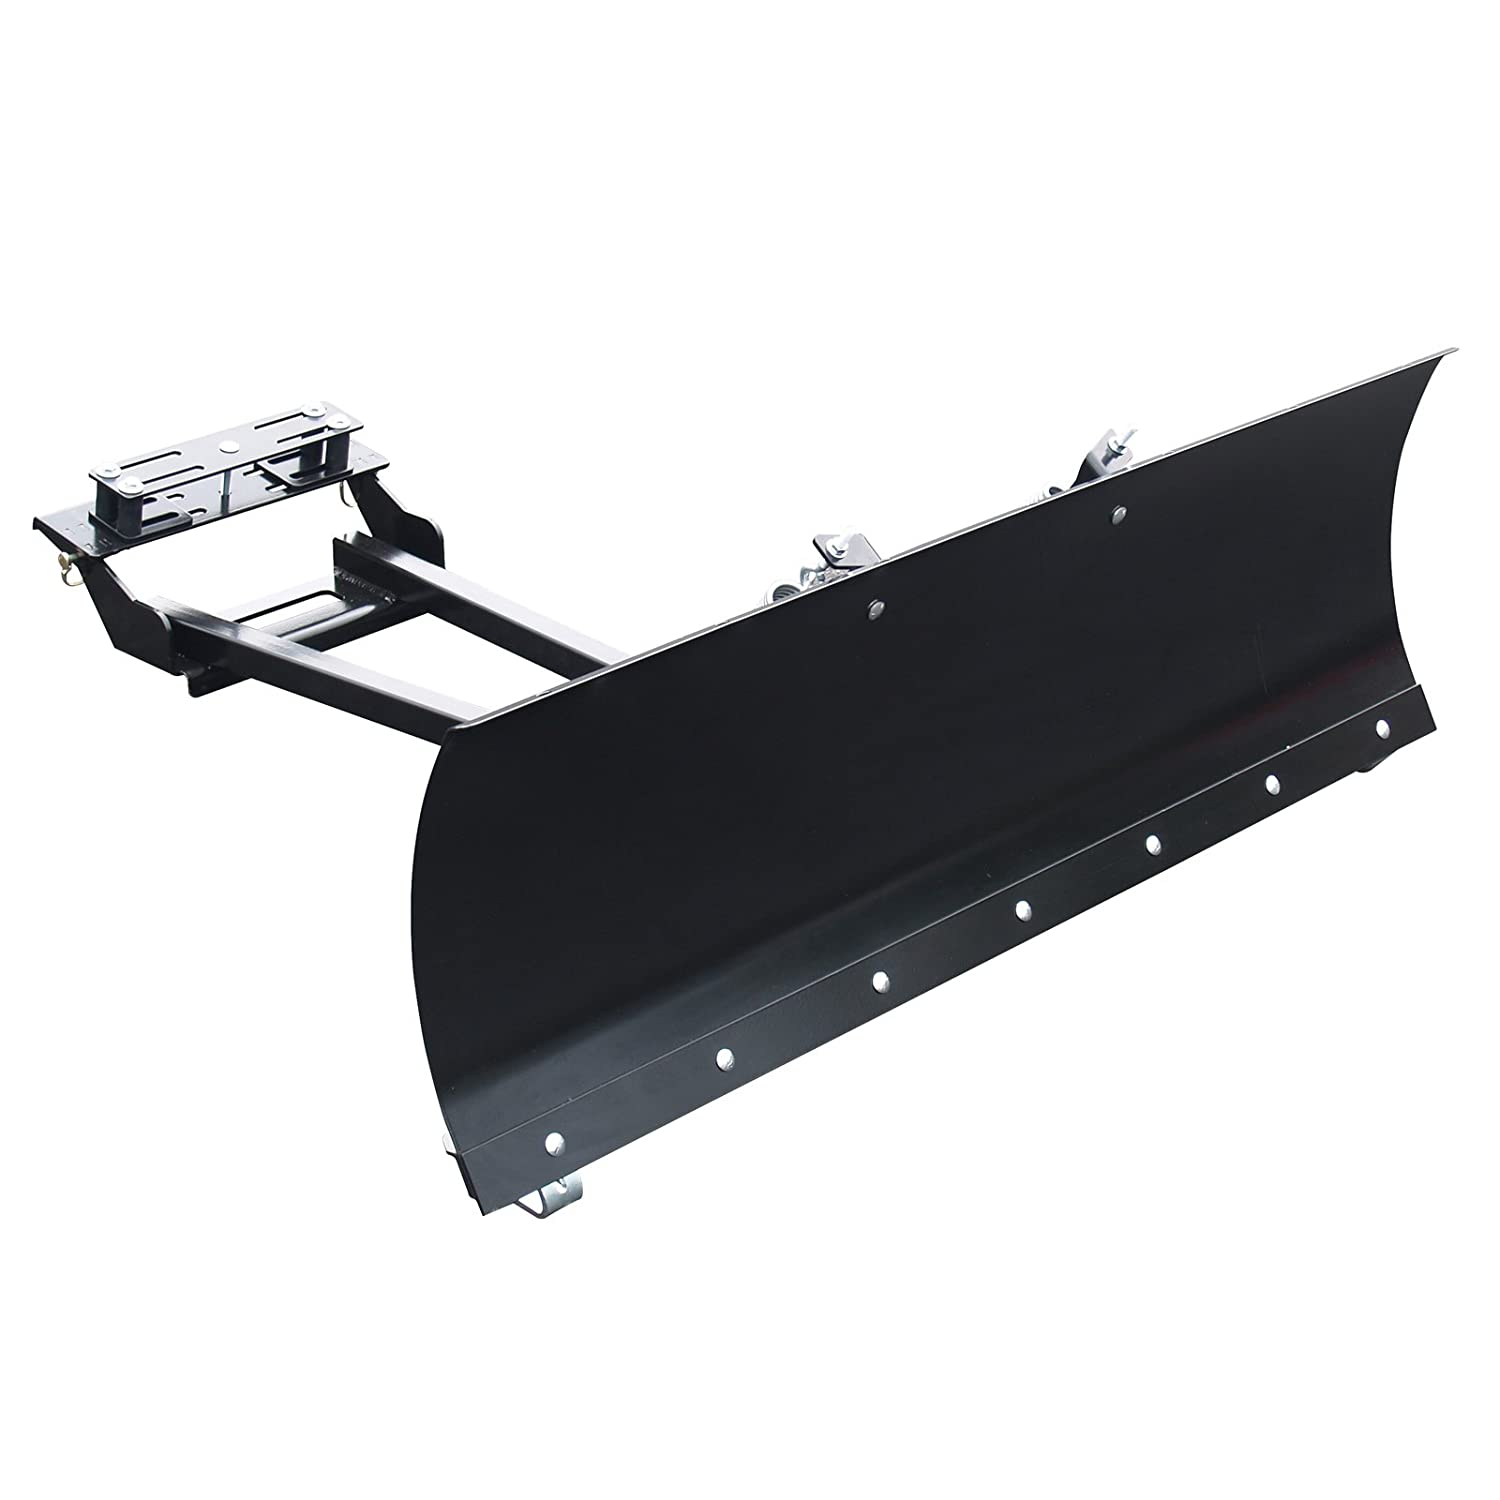 Extreme Max UniPlow 5500.5010 One-Box ATV Plow